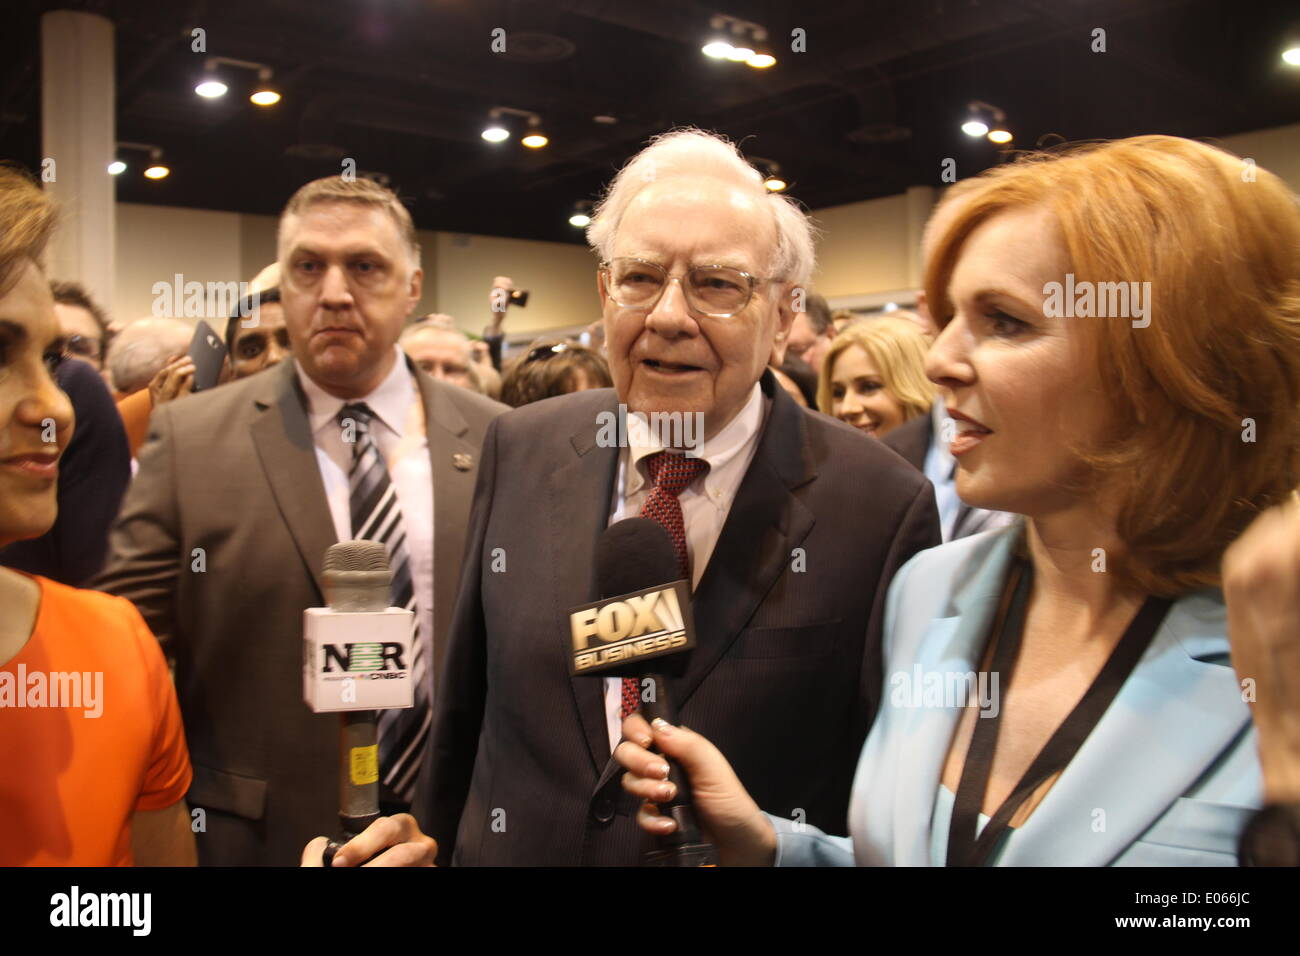 Omaha, USA. 3rd May, 2014. Warren Buffett, chairman of Berkshire Hathaway, is interviewed by media before the annual shareholders' meeting of Berkshire Hathaway in Omaha, the United States, May 3, 2014. Credit:  Huang Jihui/Xinhua/Alamy Live News - Stock Image